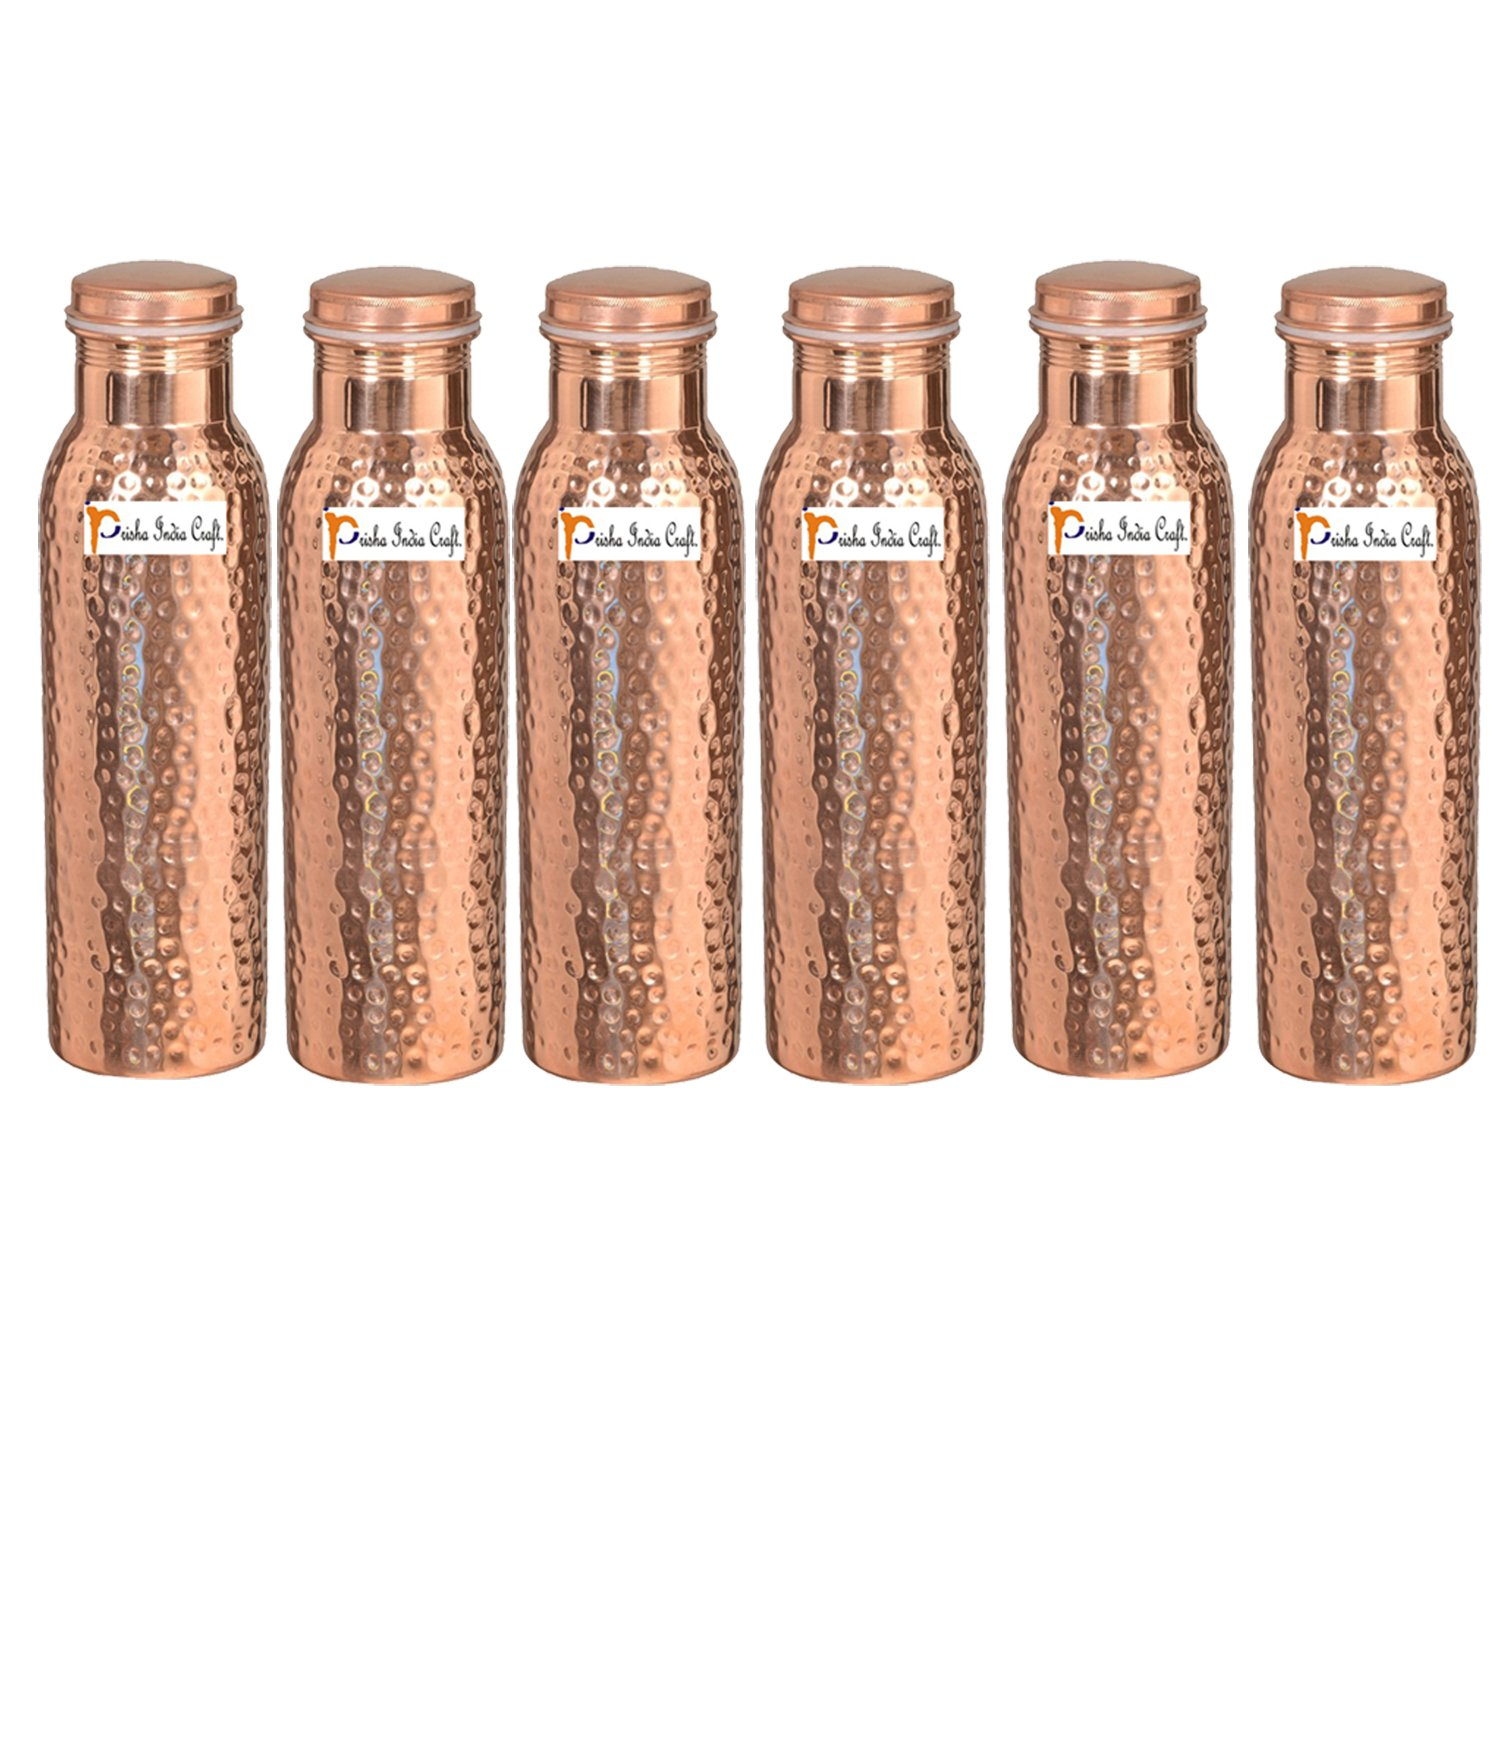 900ml / 30oz – Set of 6 - Prisha India Craft ® Pure Copper Water Bottle Ayurveda Health Benefits - Best Quality Water Bottles Joint Free, Handmade Christmas Gift